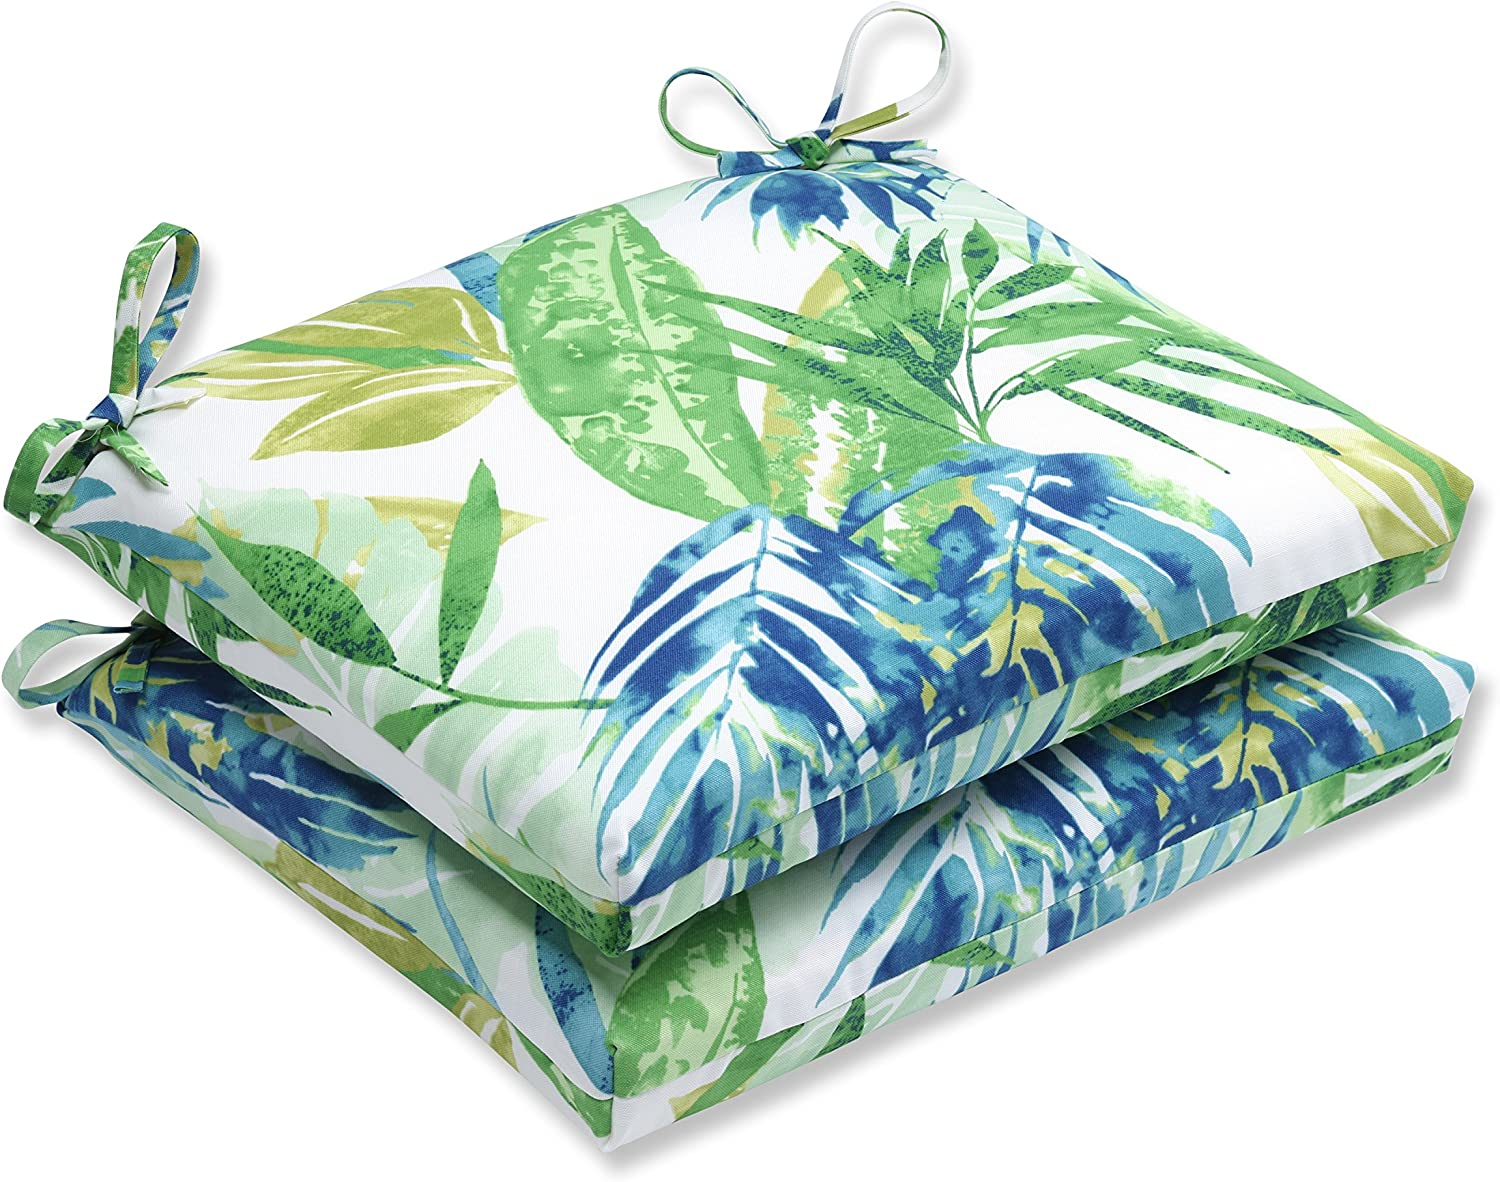 Pillow Perfect Outdoor Indoor Soleil Squared Corners Seat Cushion Set of 2 , Blue Green